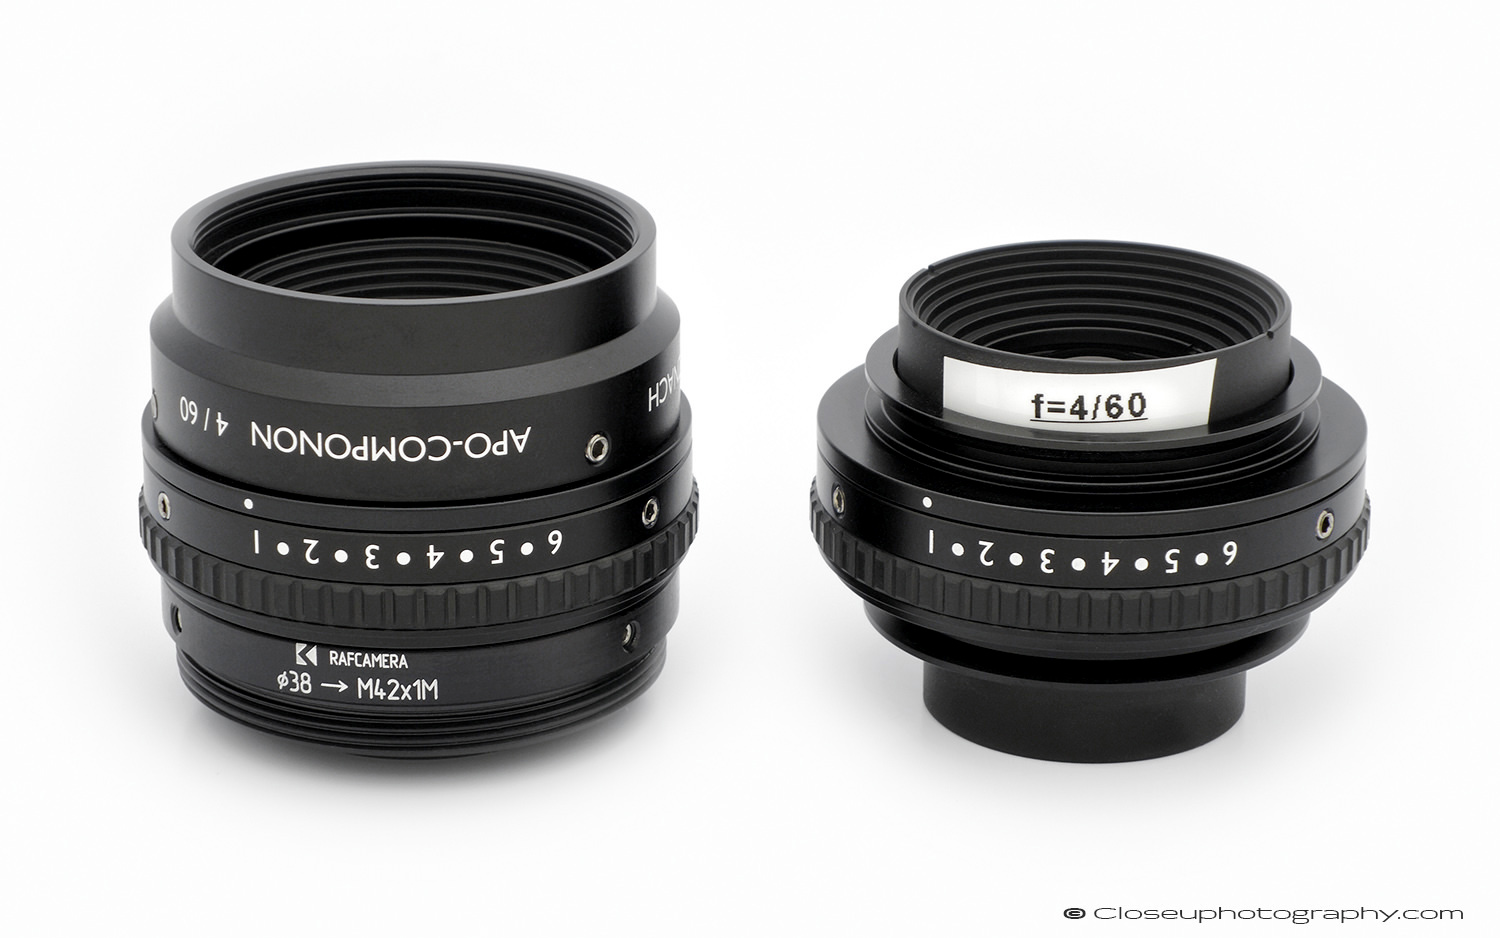 Schneider APO Componon 60mm f4 line scan lens with and without shroud and mount adapter